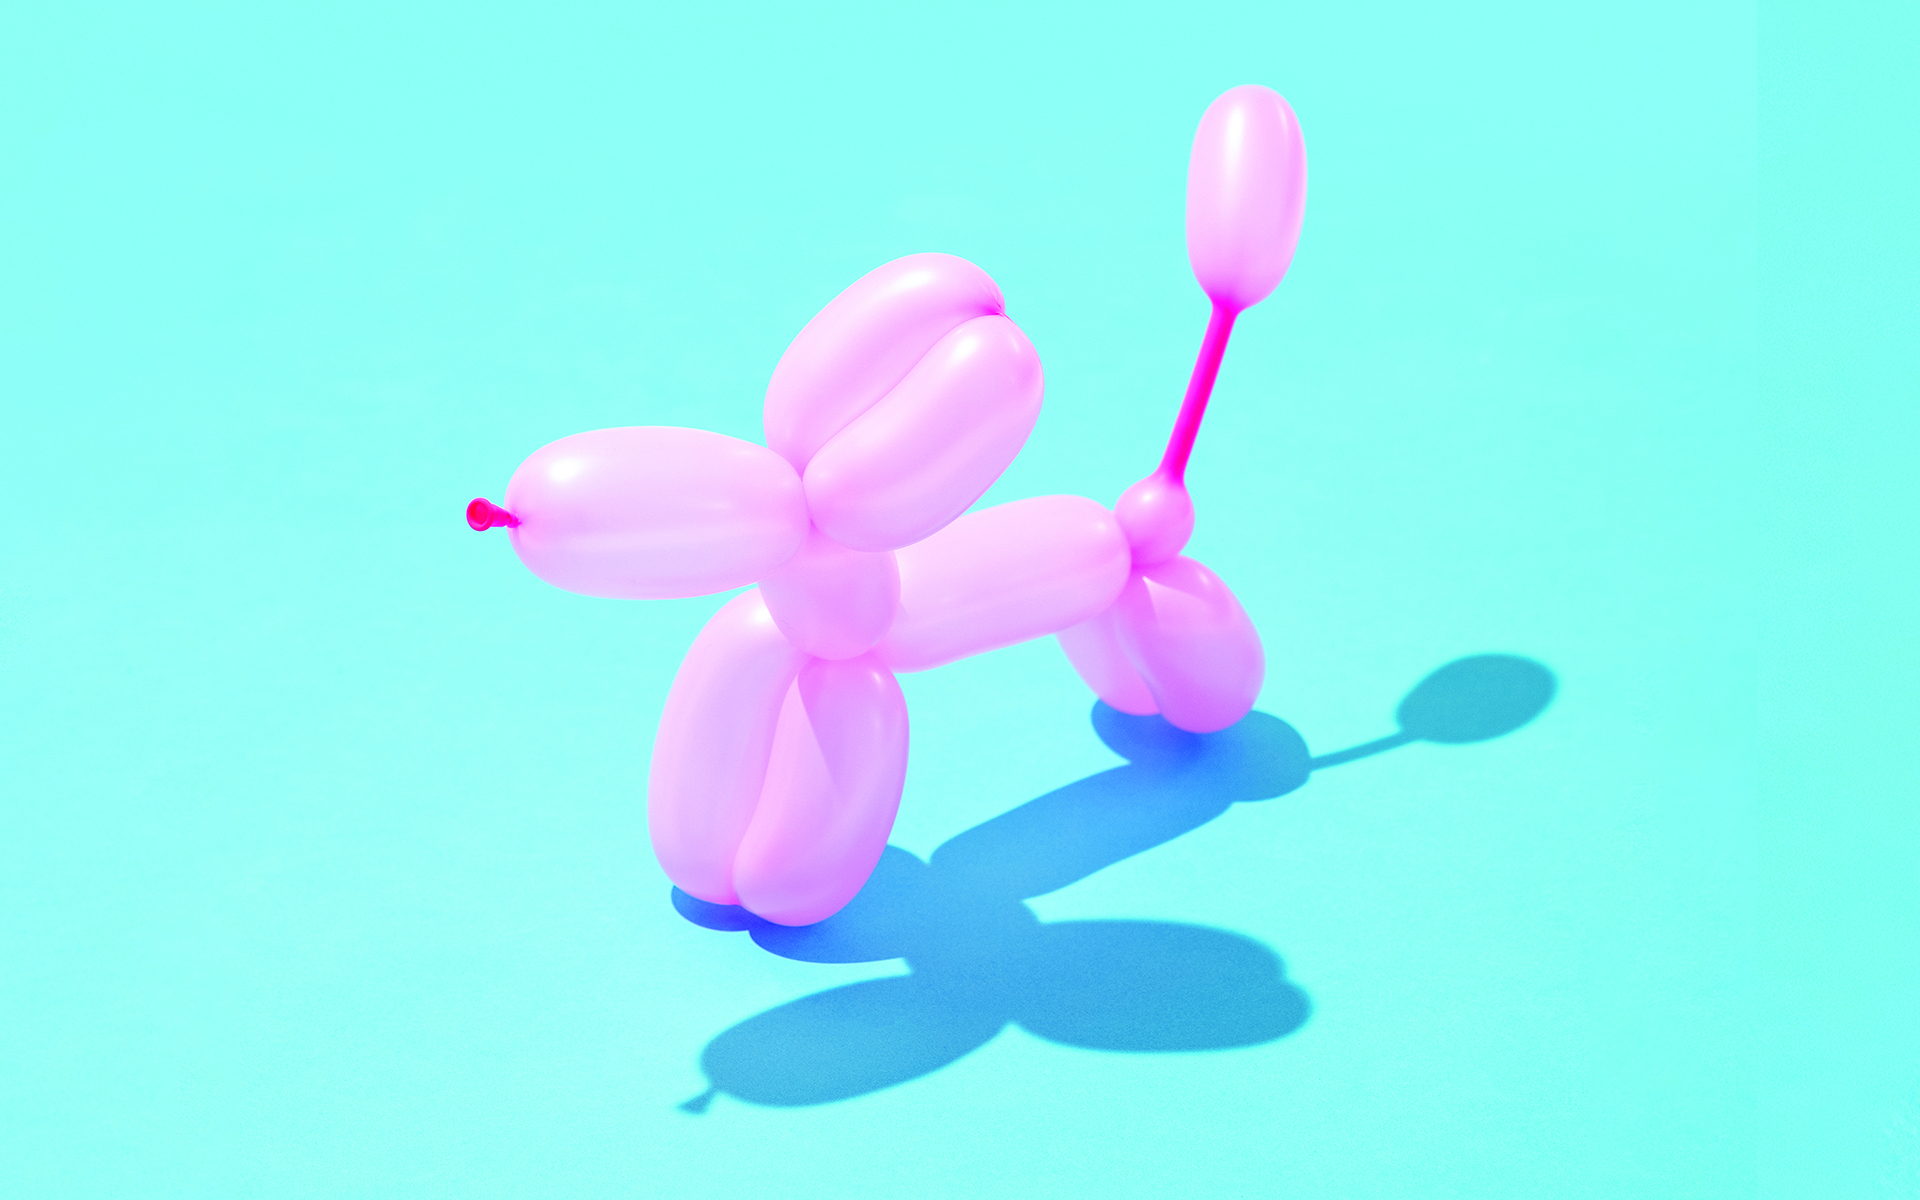 Building Resilience with the Wisdom of Clowning - Photo of a balloon shaped like a dog